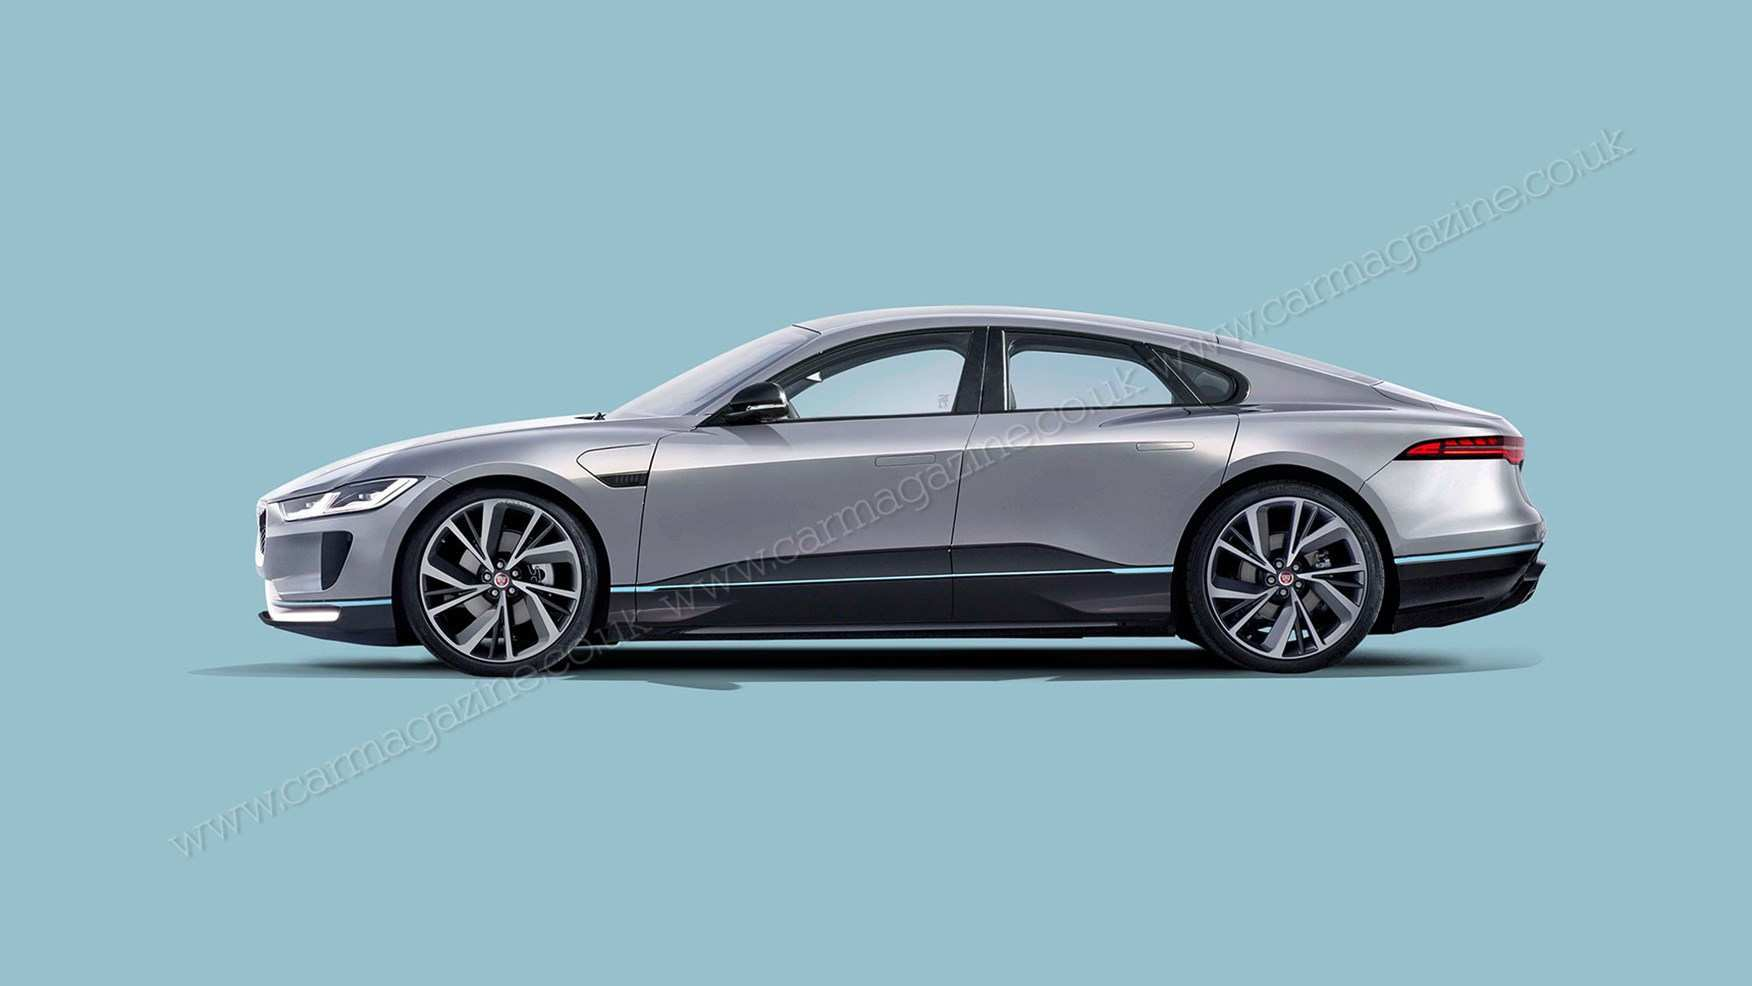 58 Best Review 2020 Jaguar Xf Release Date First Drive with 2020 Jaguar Xf Release Date